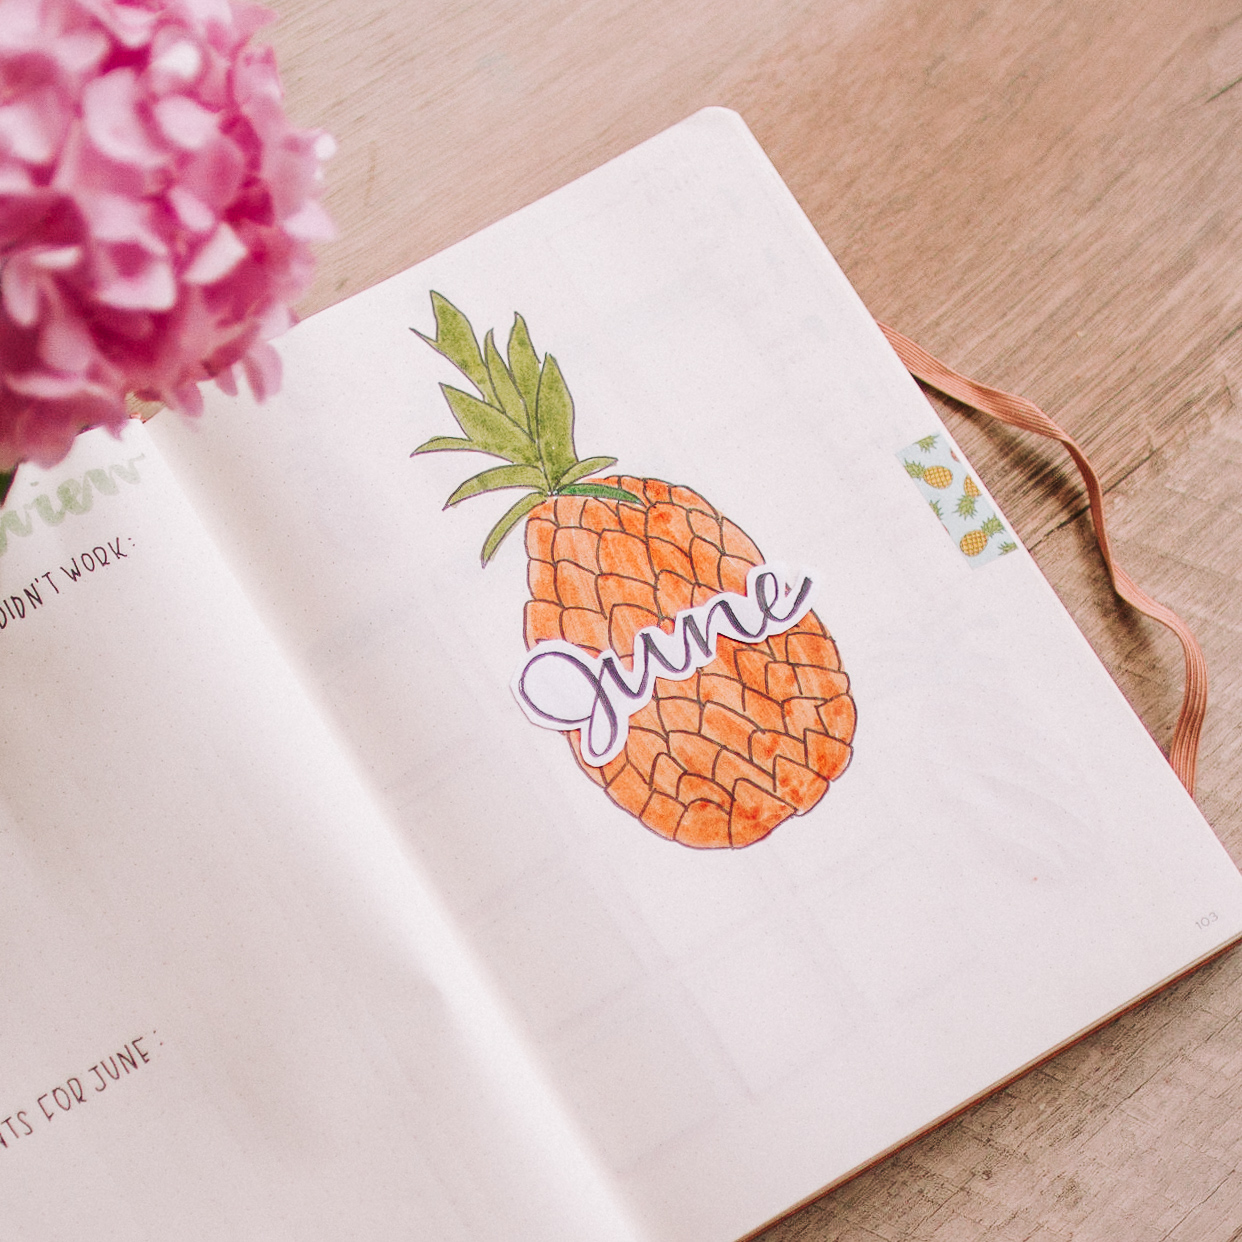 June 2019 bullet journal setup pineapple theme cover page